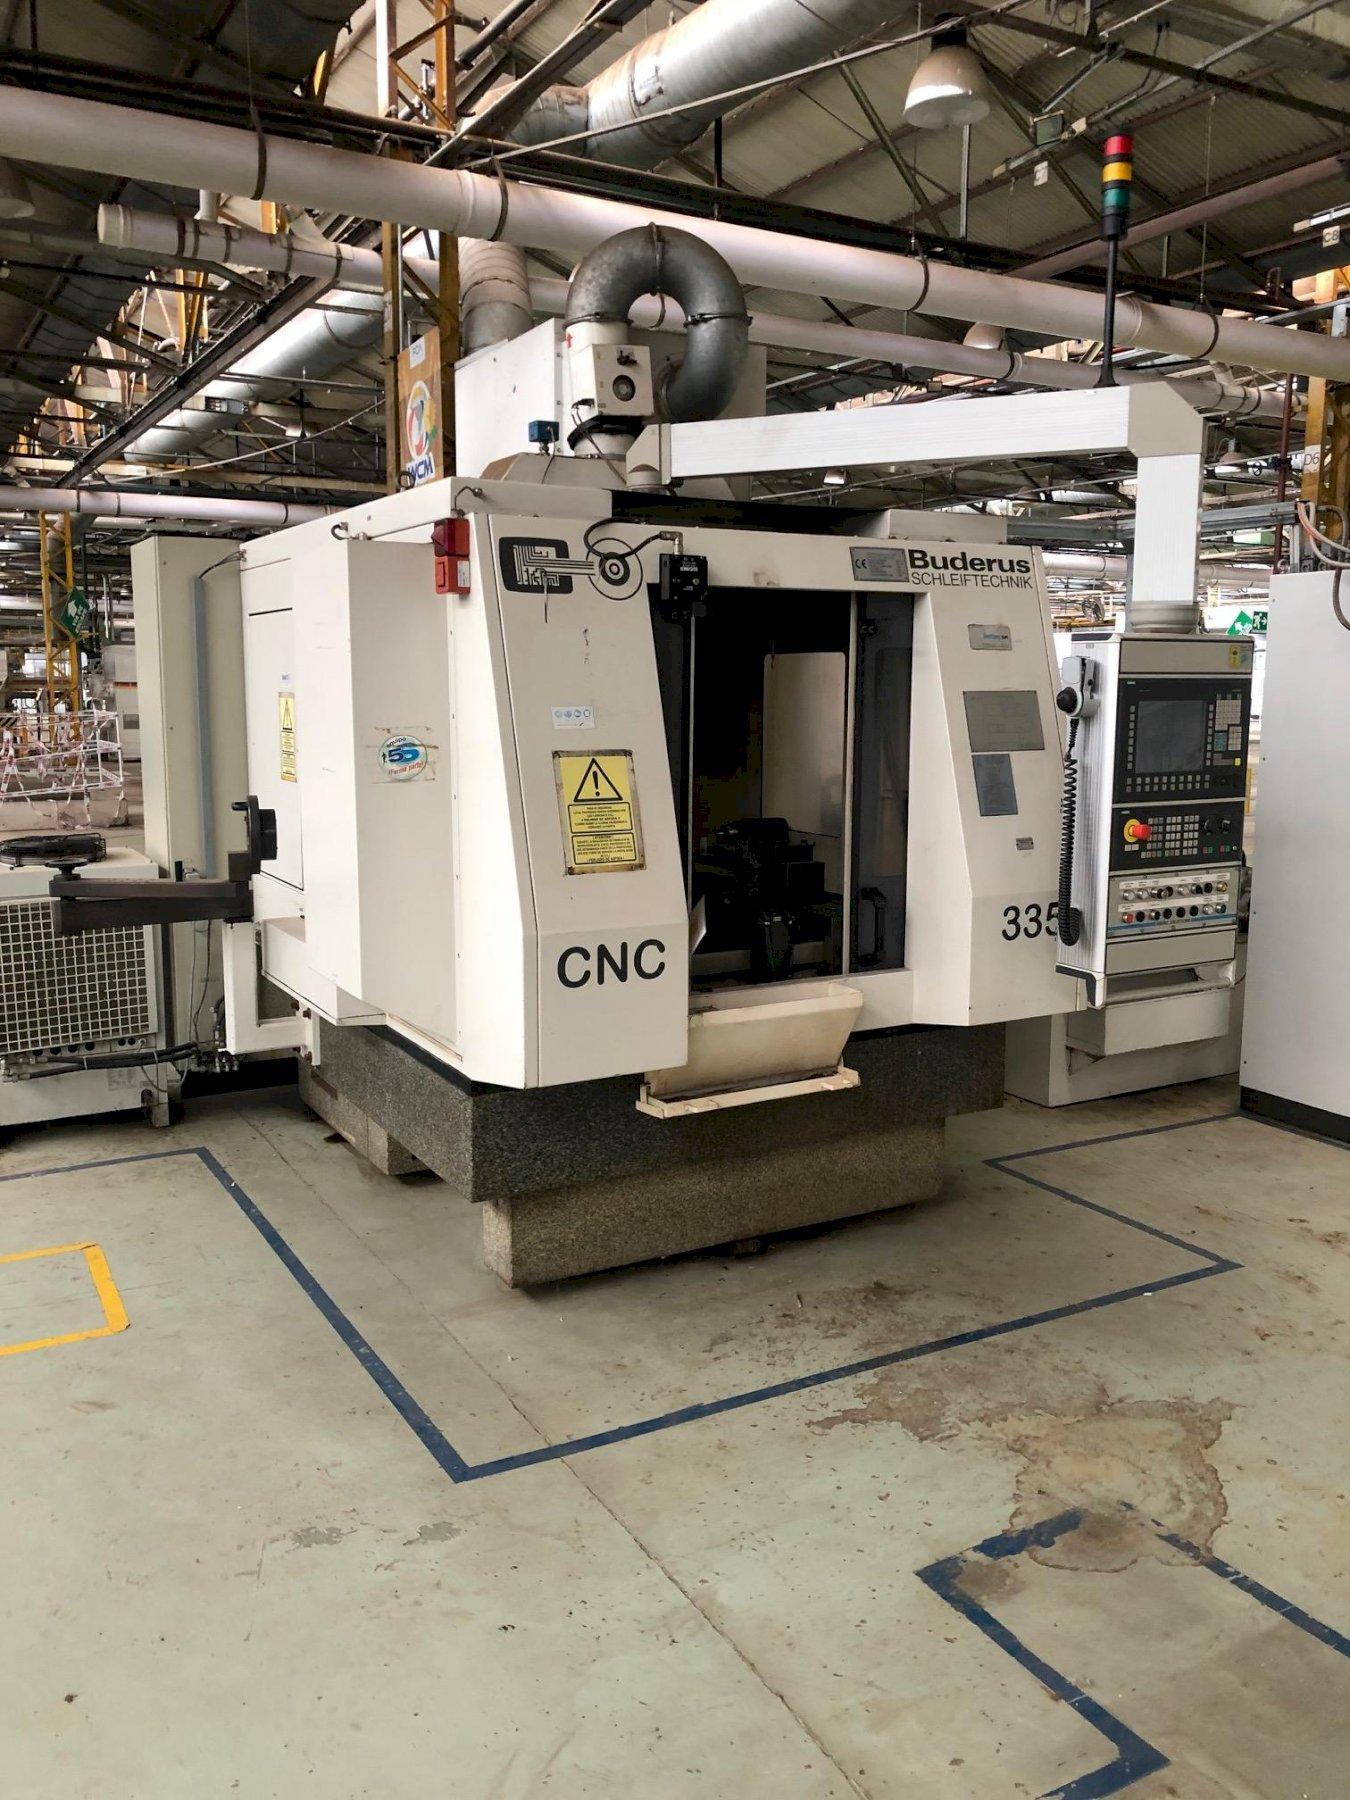 Buderus CNC 635-500 Cylindrical Grinder